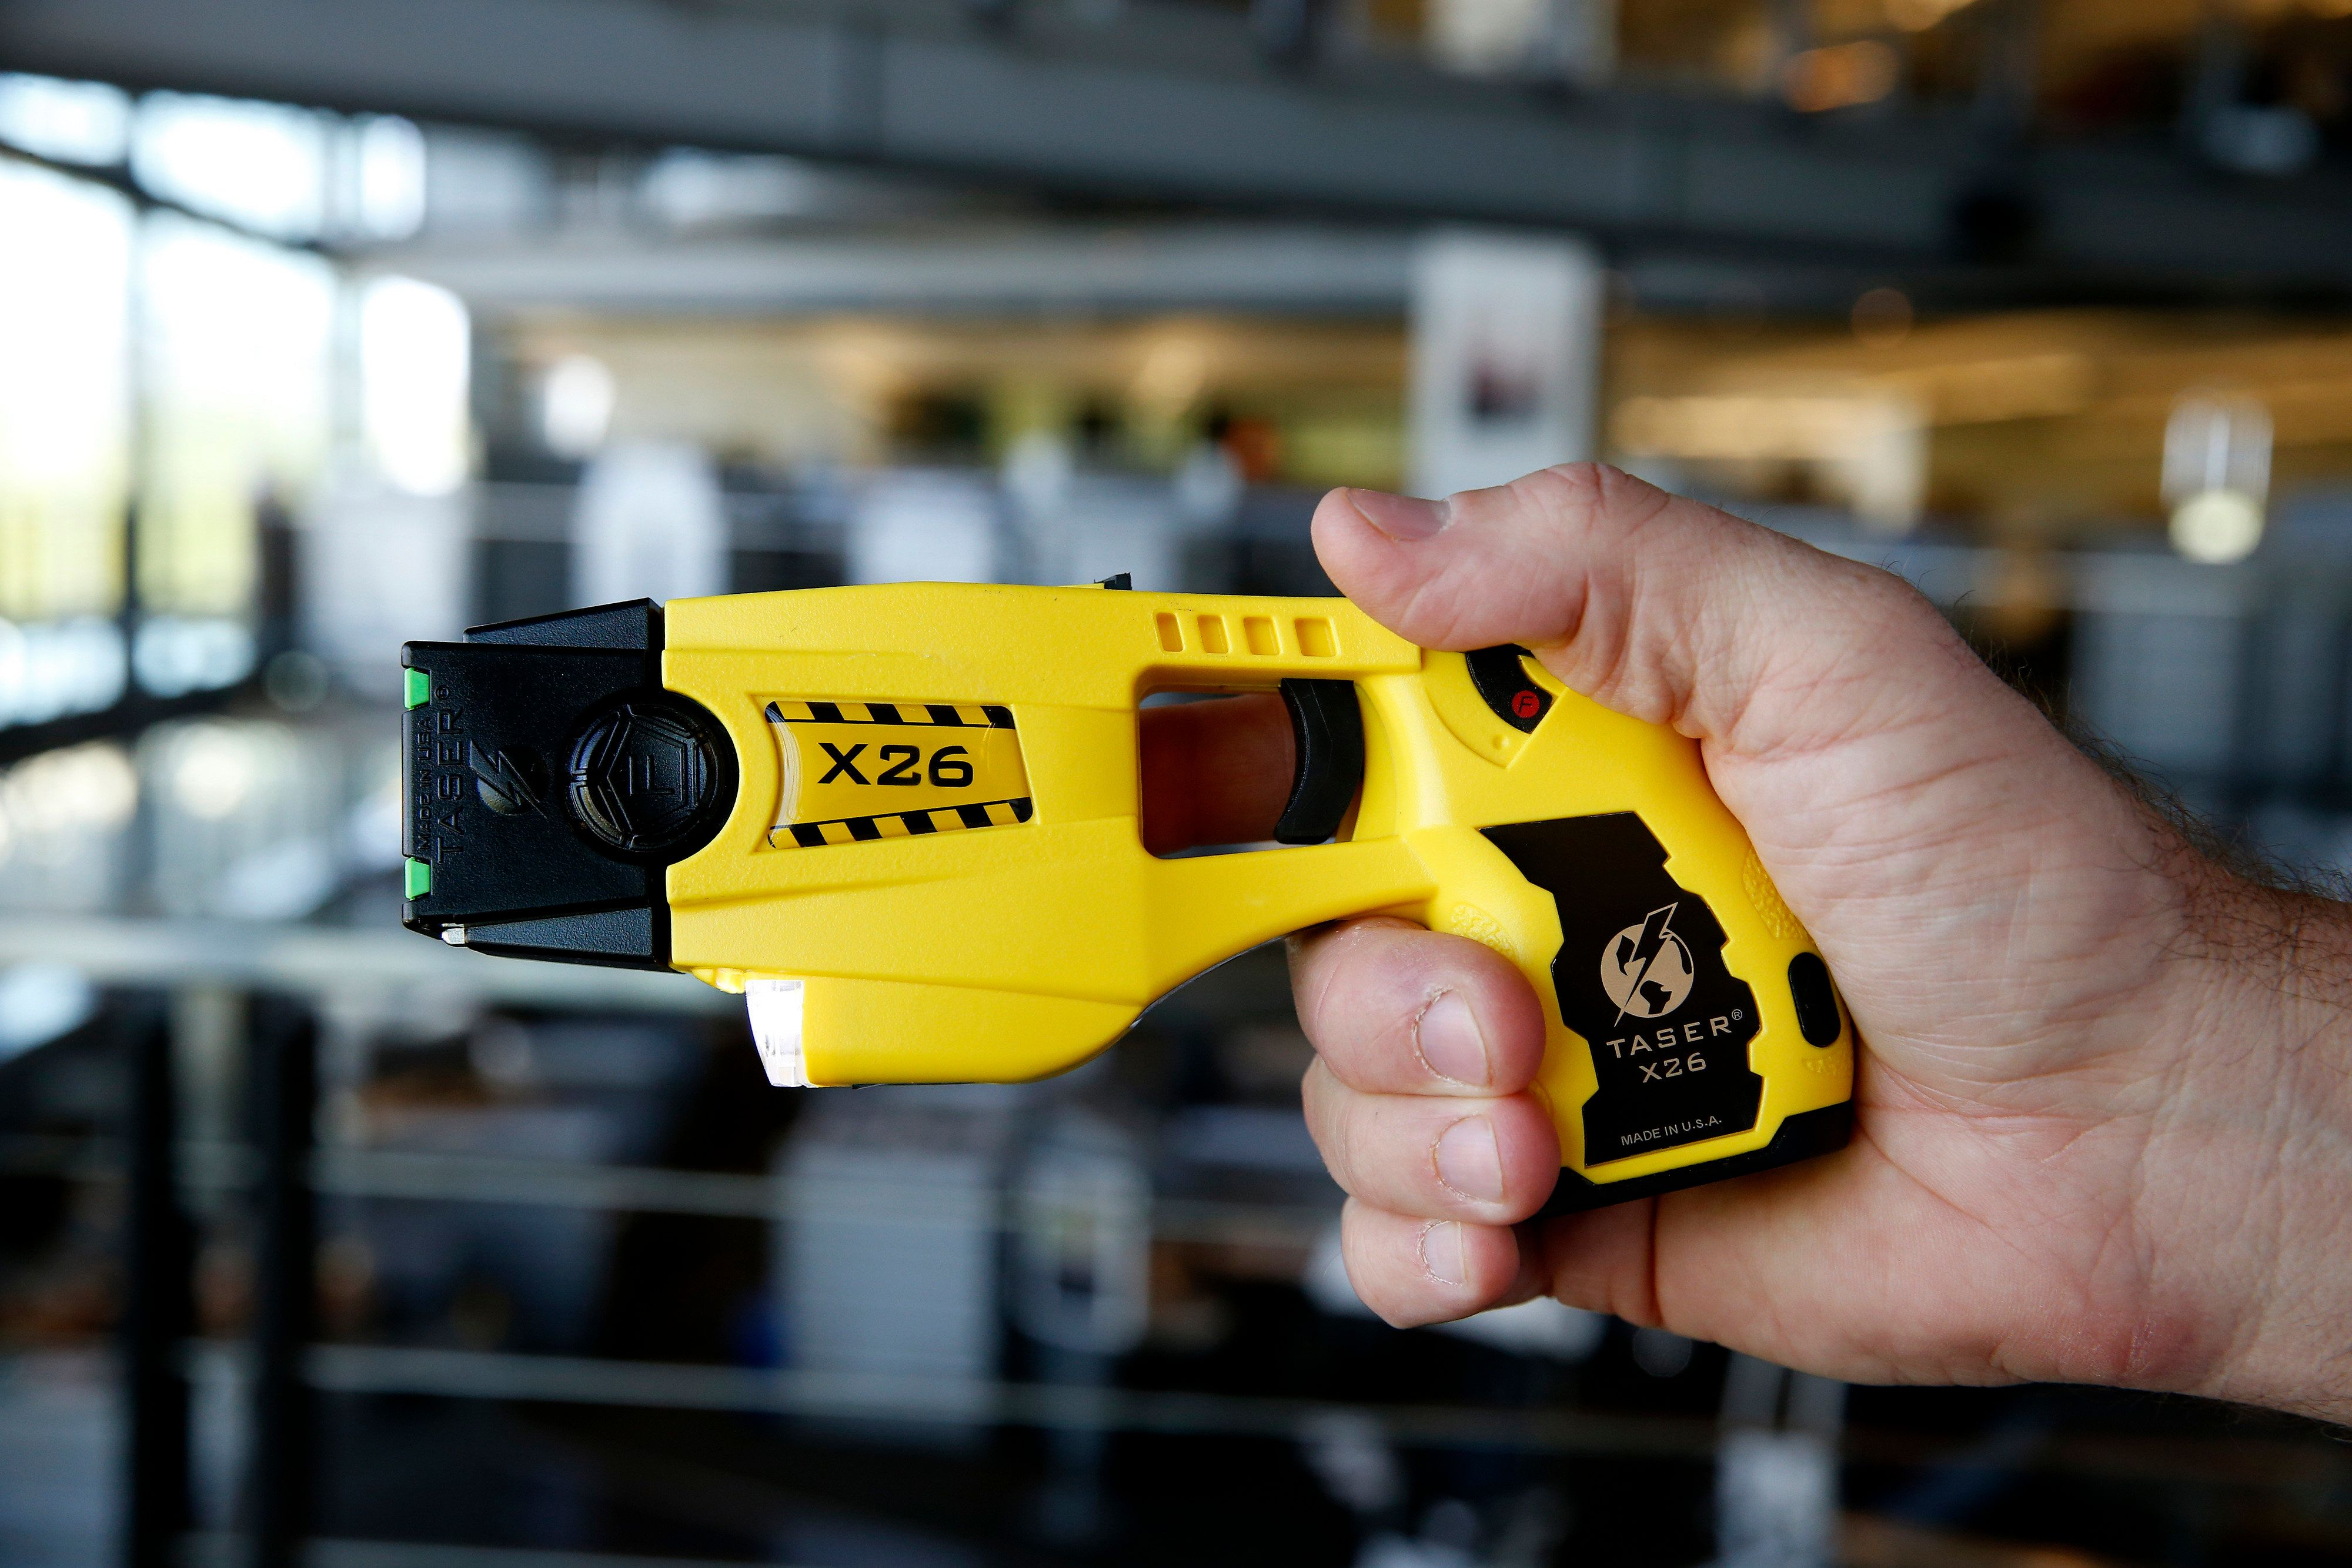 A Taser X26 at the Taser International Inc. manufacturing facility in Scottsdale, Arizona, on April 22, 2015.